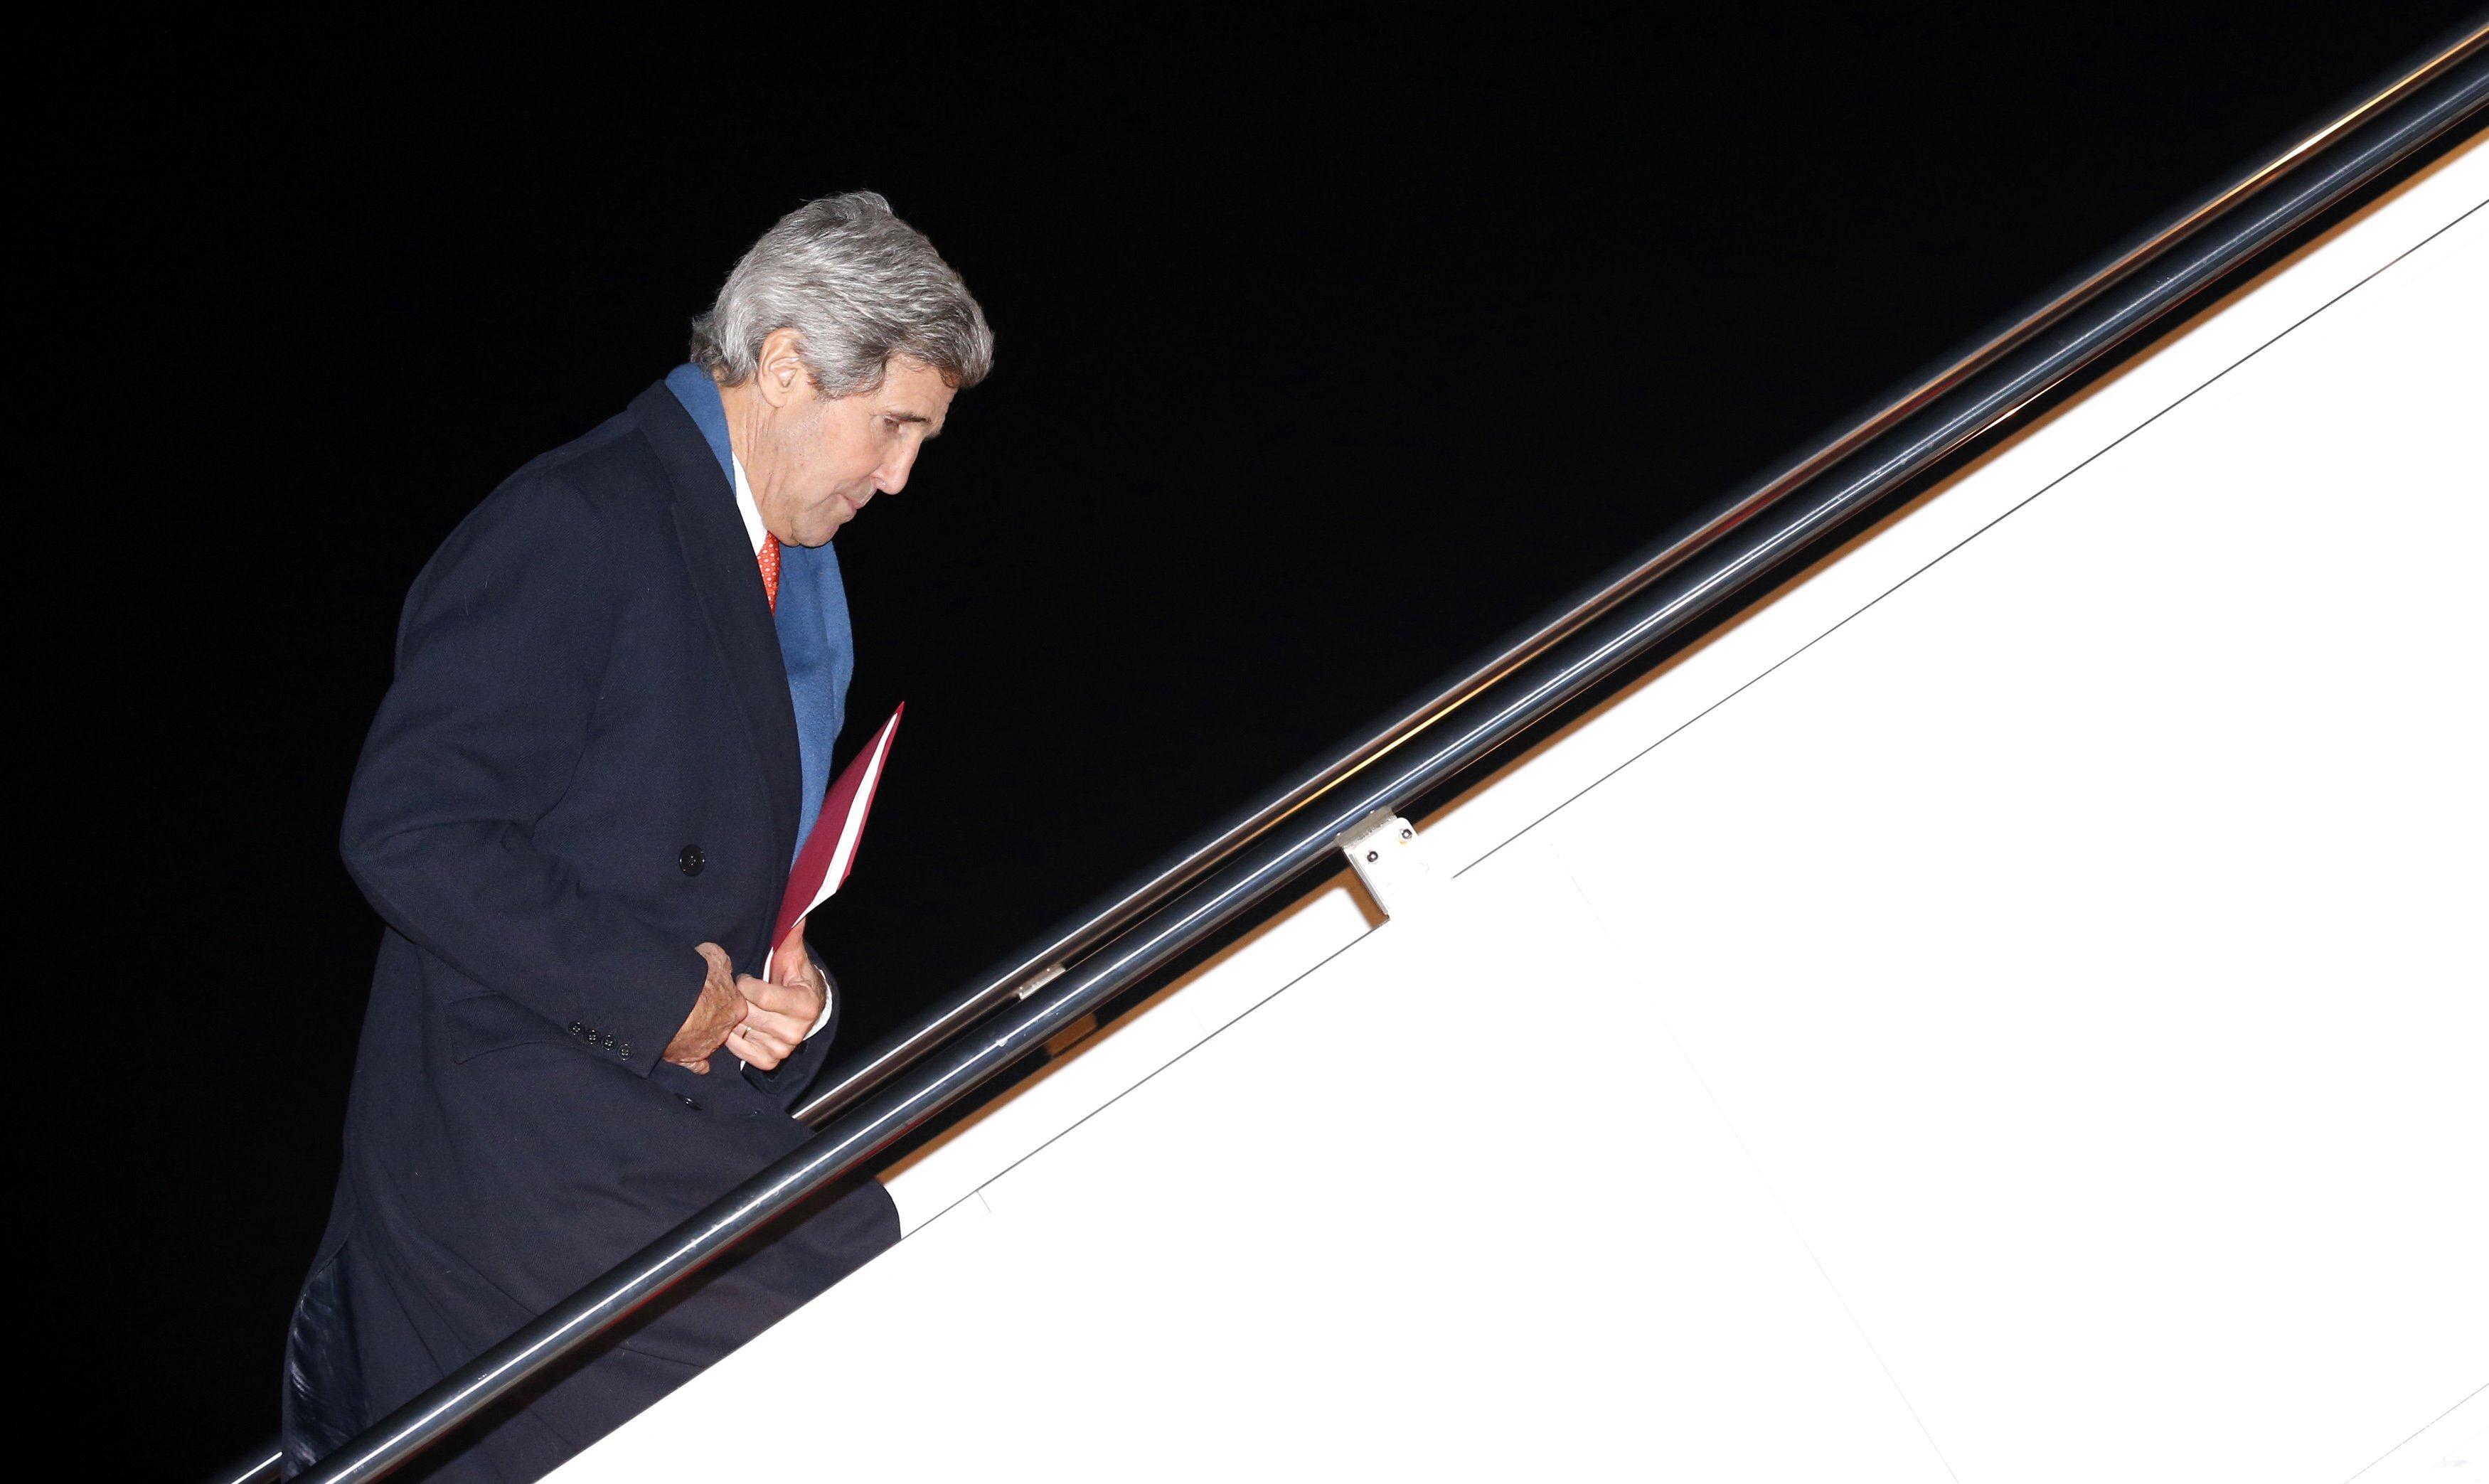 Image: Secretary of State John Kerry